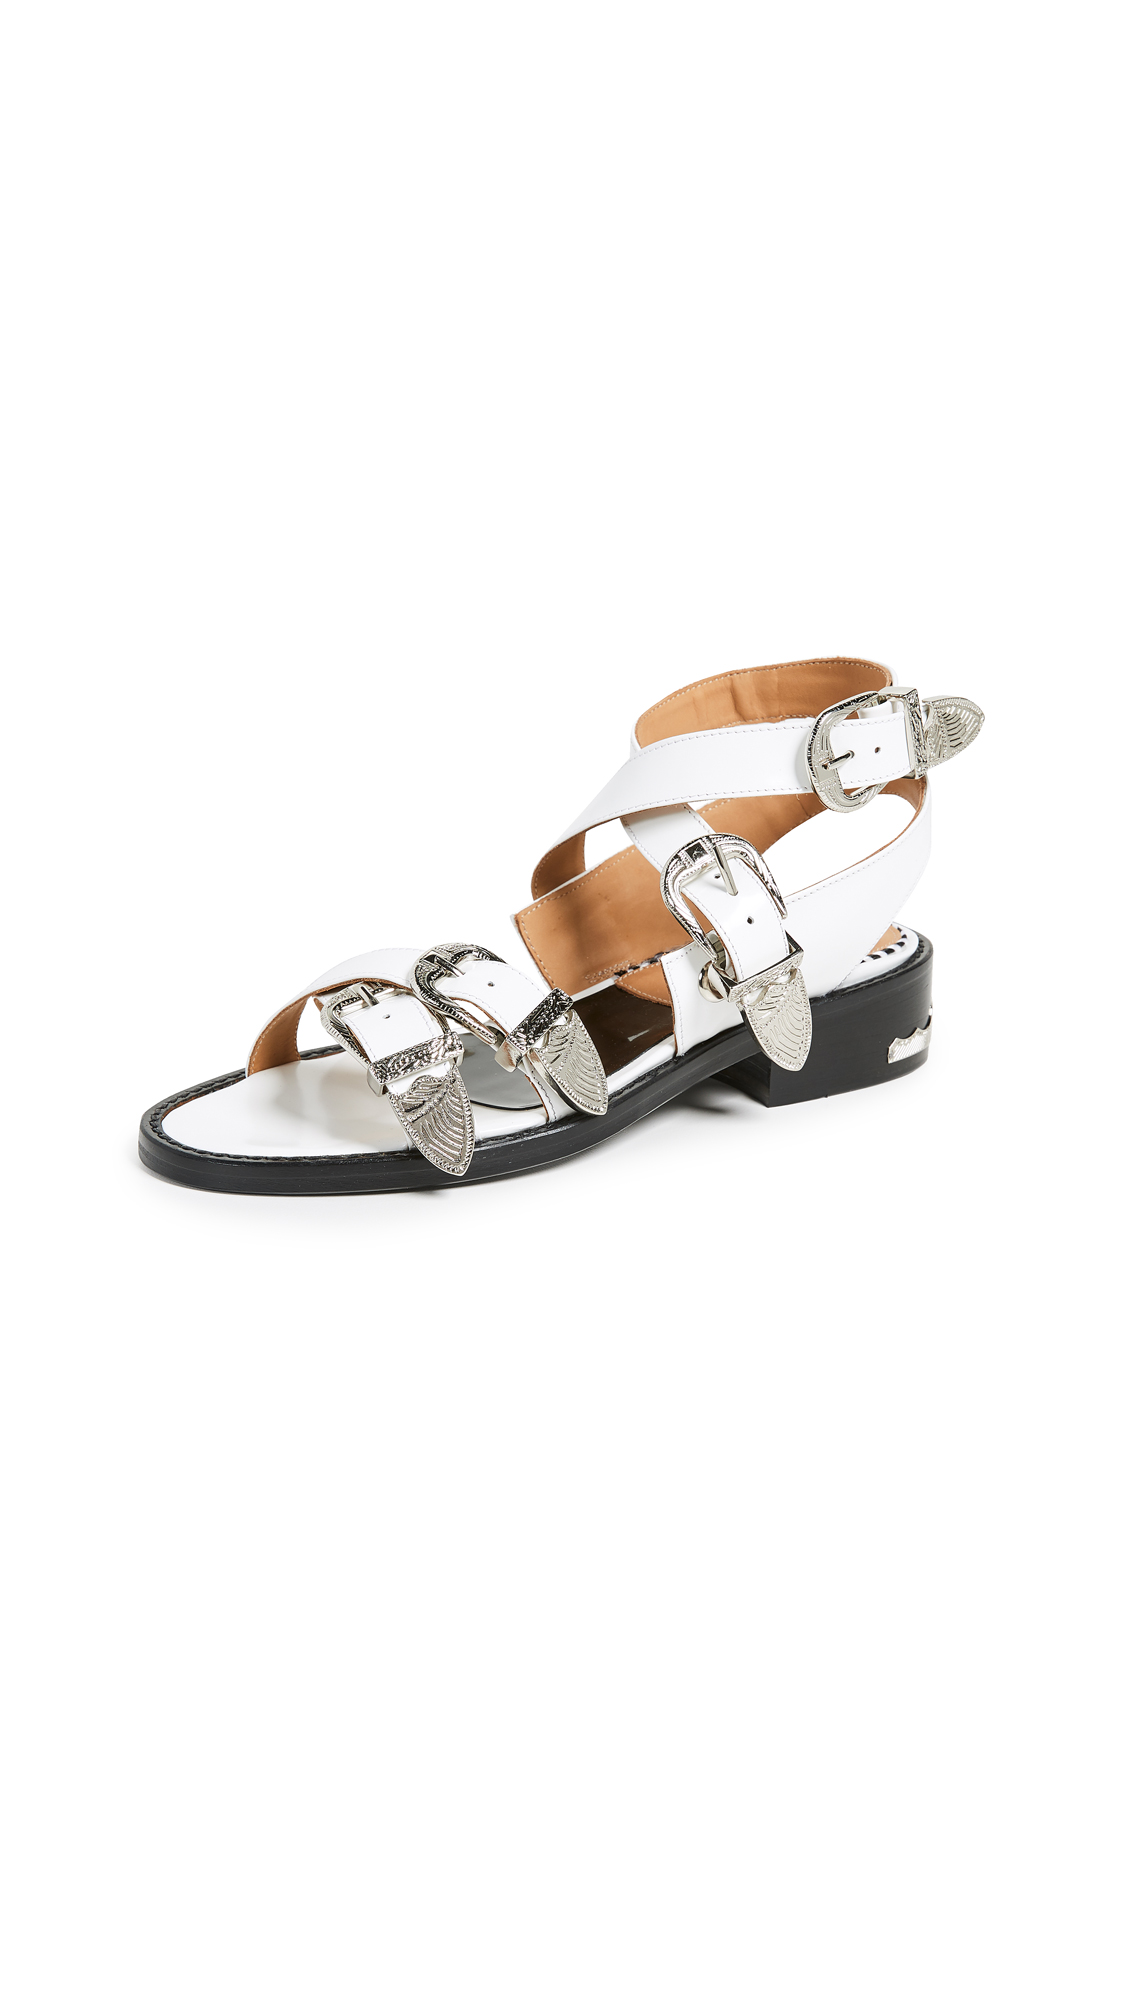 Toga Pulla Buckle Strap Sandals - White